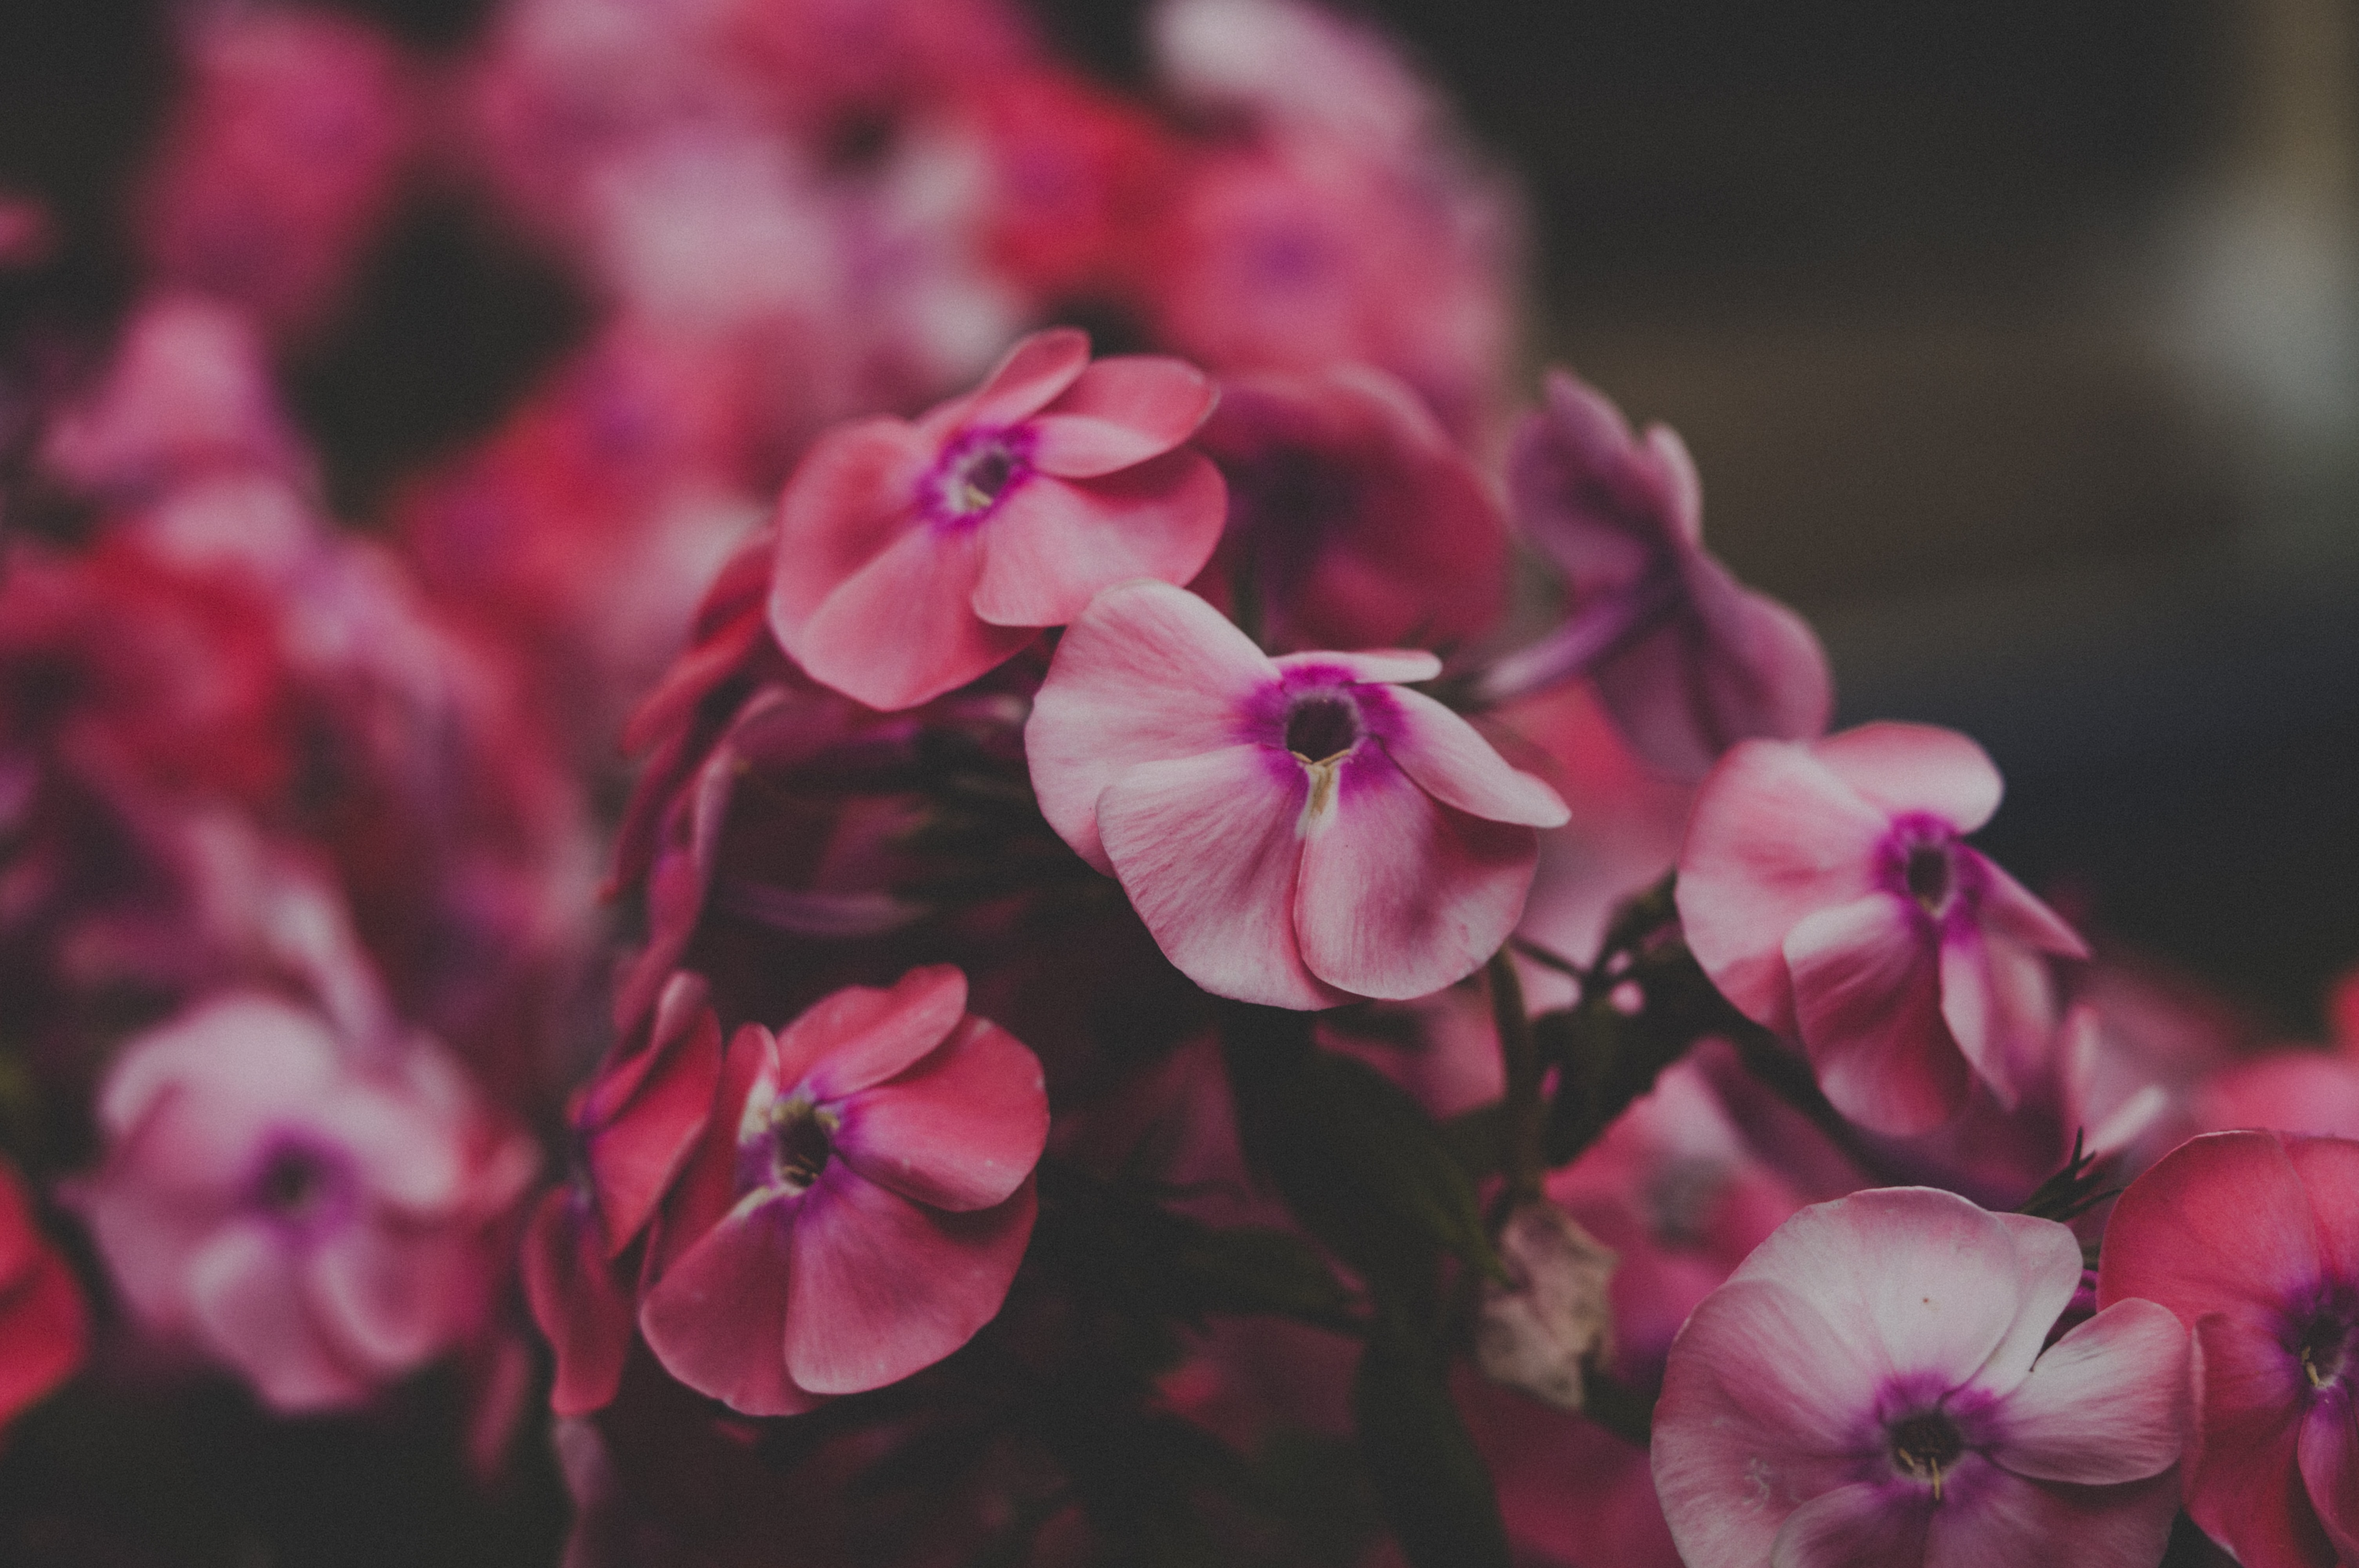 pink petaled flowers close-up photo